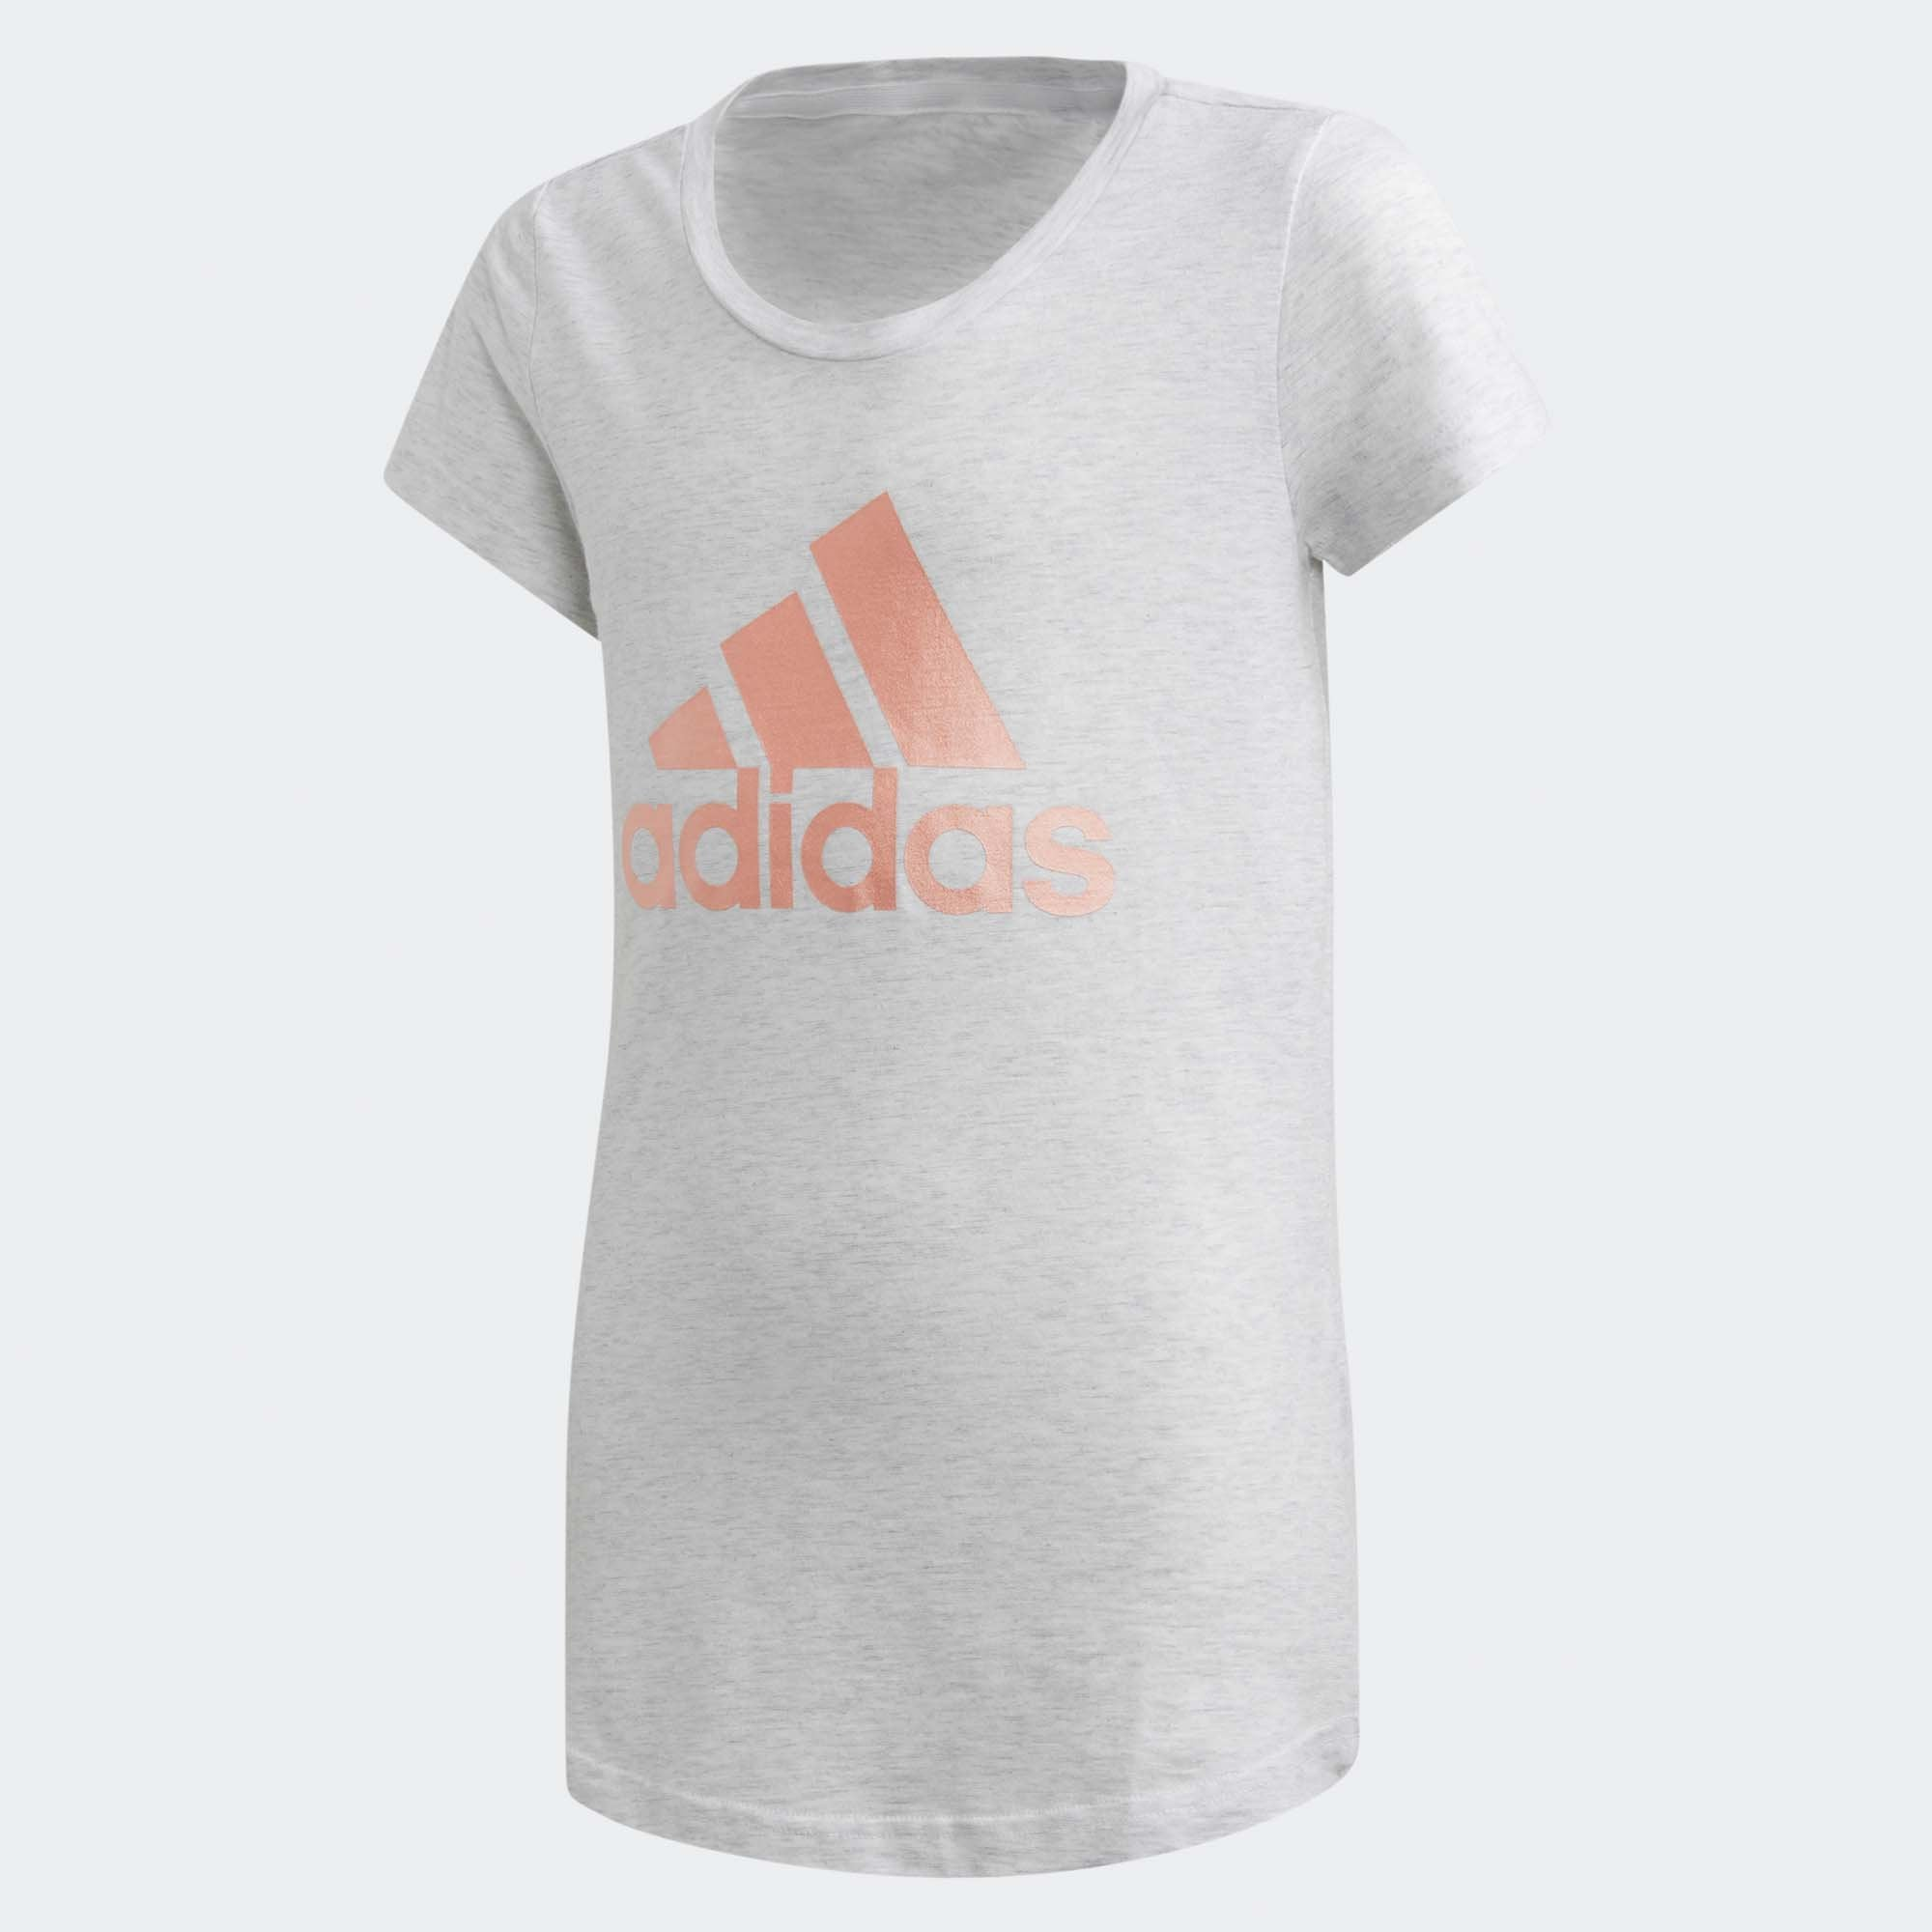 adidas t shirt in singapore